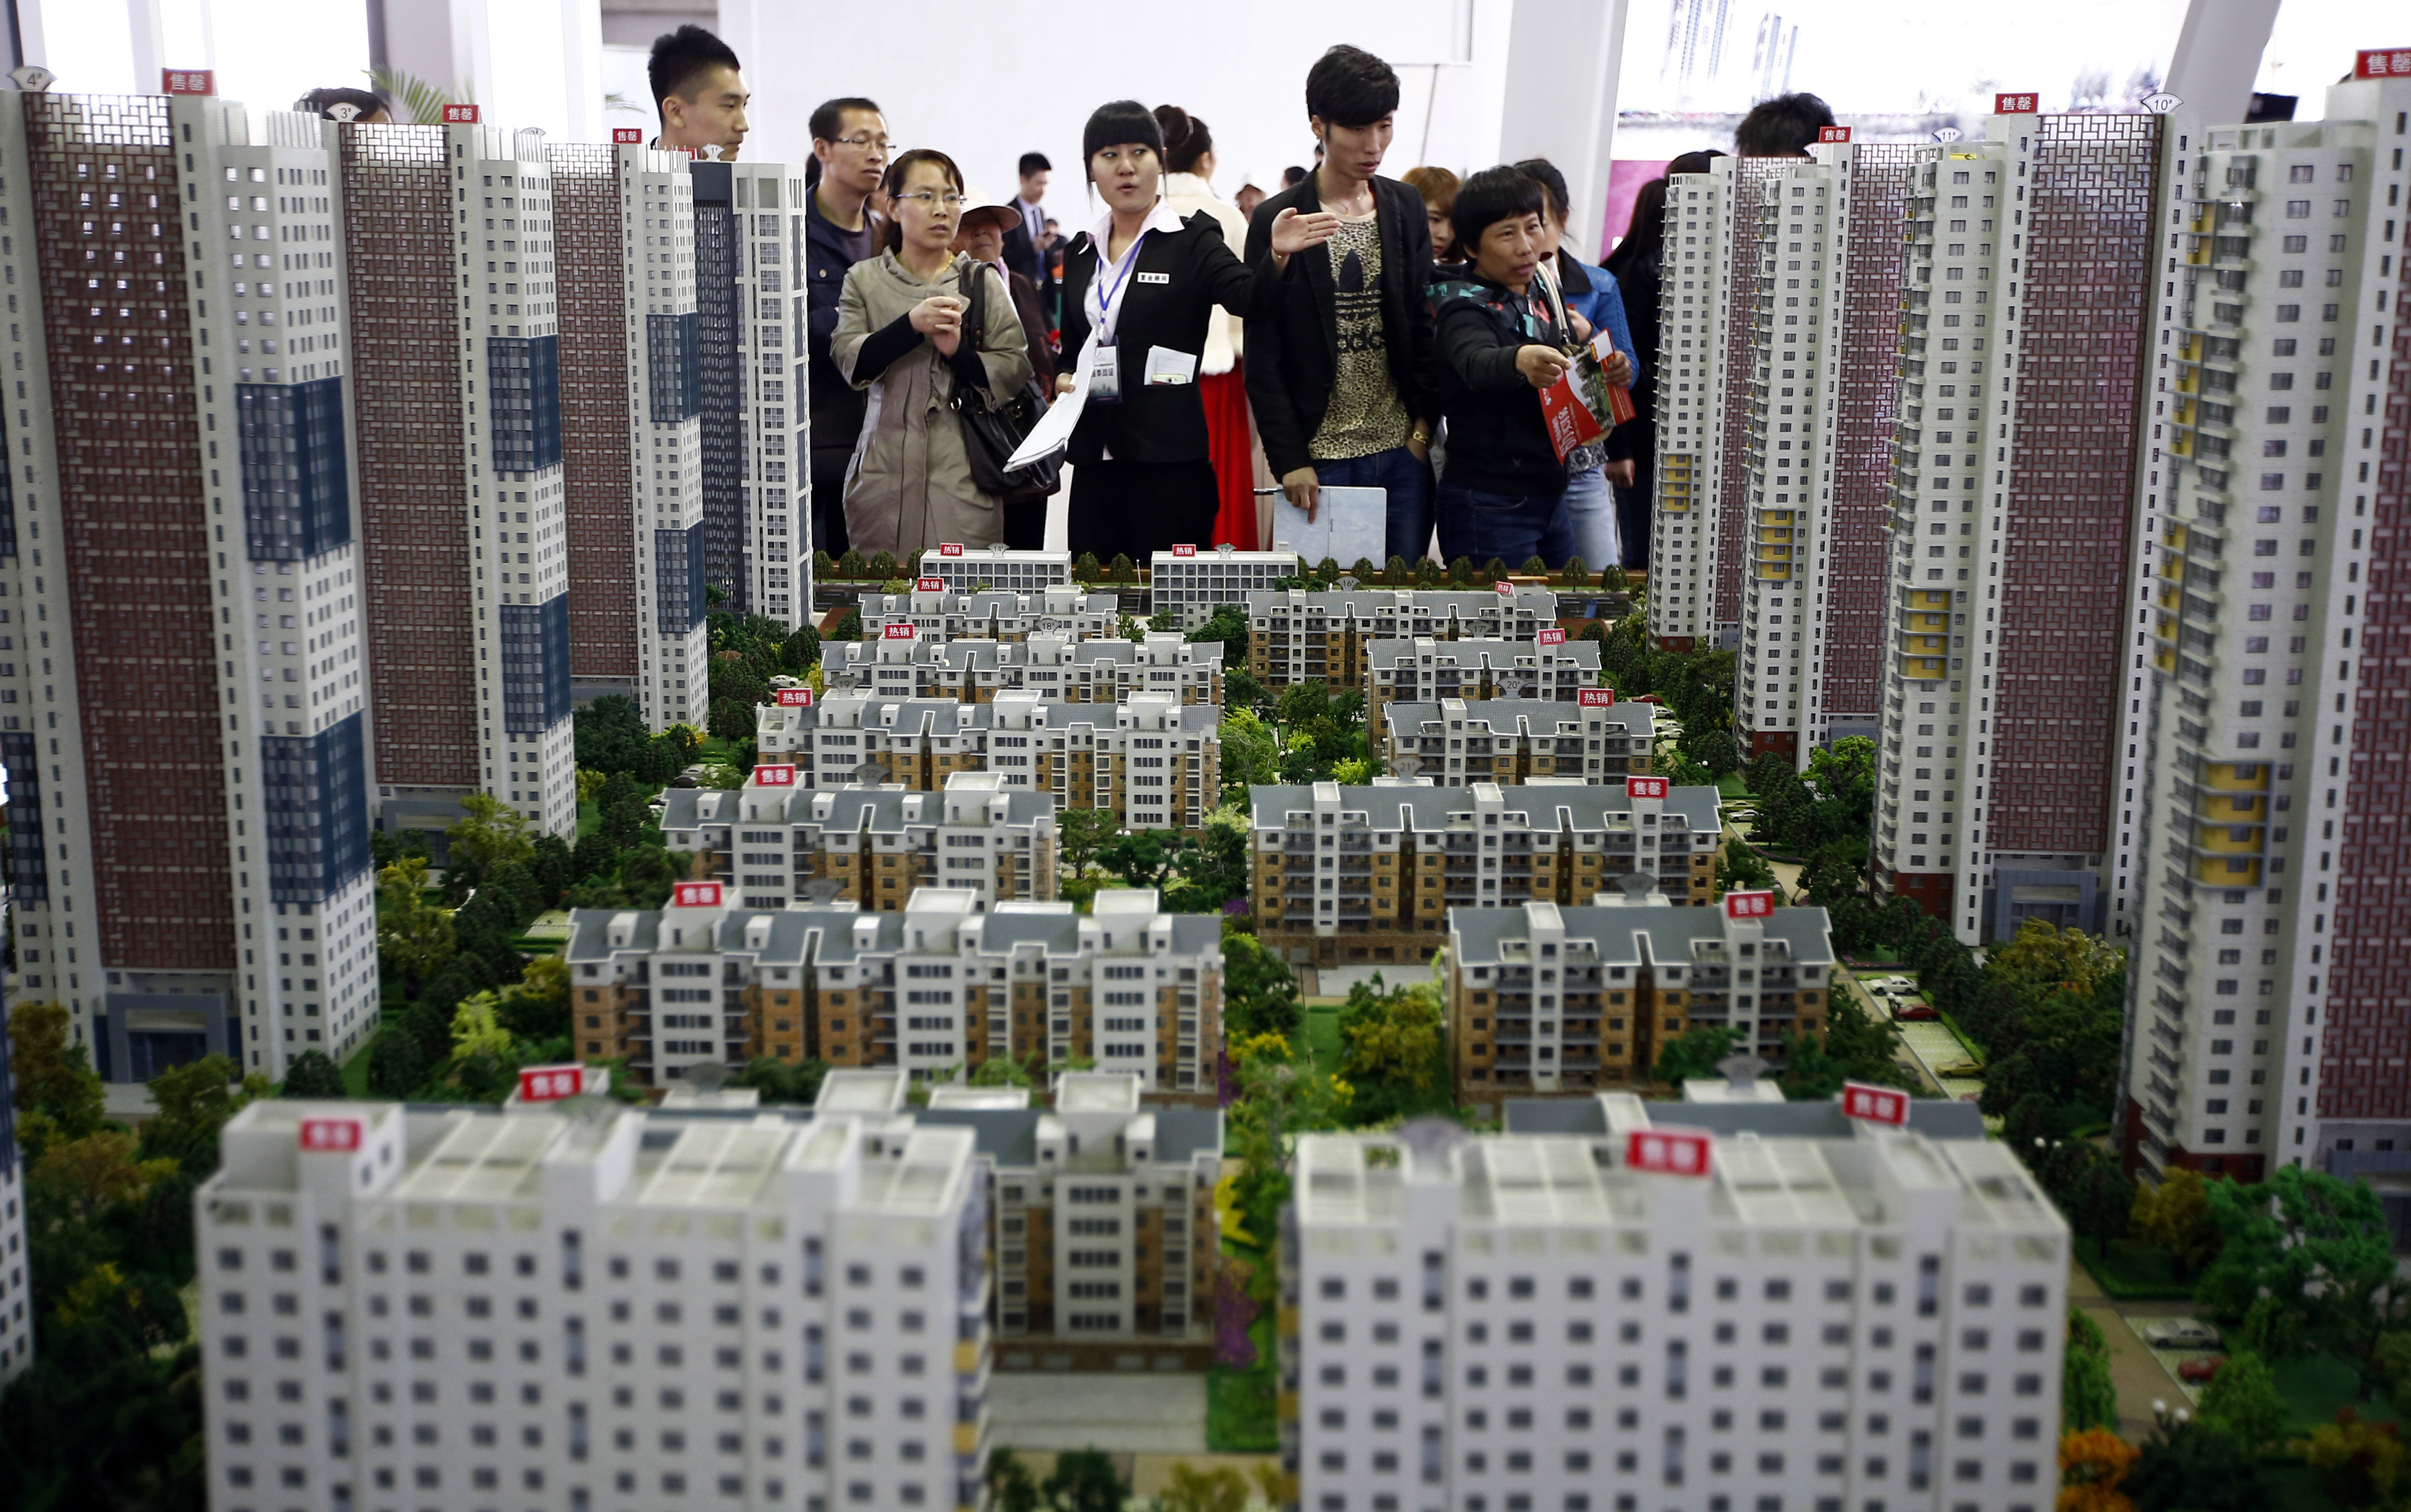 A sales assistant talks to visitors in front of models of apartments at a real estate exhibition in Shenyang, Liaoning province April 17, 2014. China's real estate investment rose 16.8 percent in first three months of 2014 from a year earlier, and revenues from property sales dropped an annual 5.2 percent, the National Bureau of Statistics said on Wednesday. REUTERS/Stringer (CHINA - Tags: REAL ESTATE BUSINESS) CHINA OUT. NO COMMERCIAL OR EDITORIAL SALES IN CHINA - RTR3LM1B